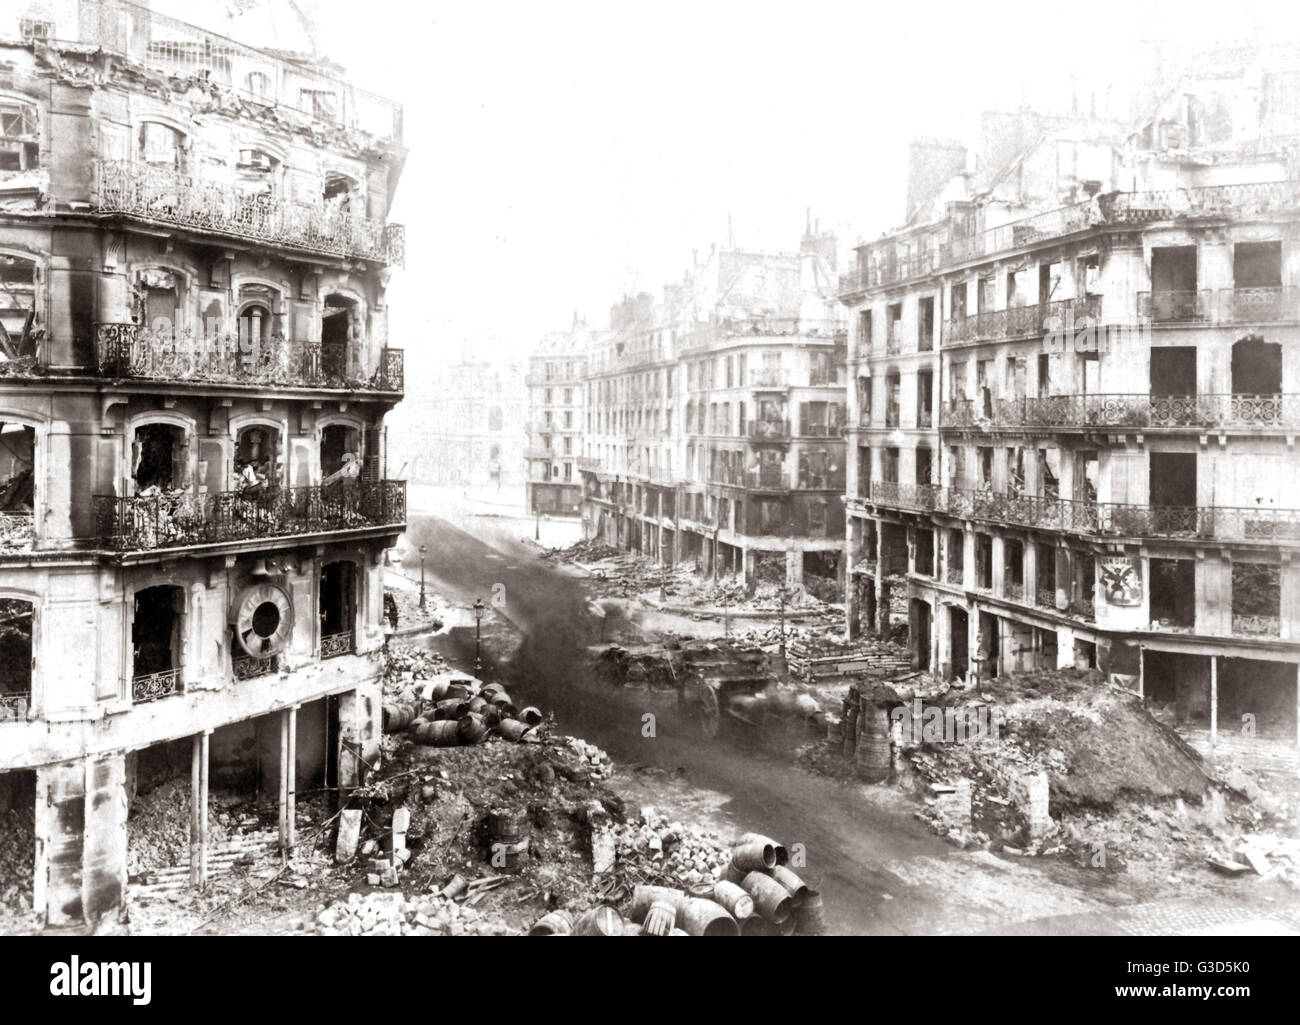 Paris, France, after the Commune, 1871.     Date: 1871 - Stock Image